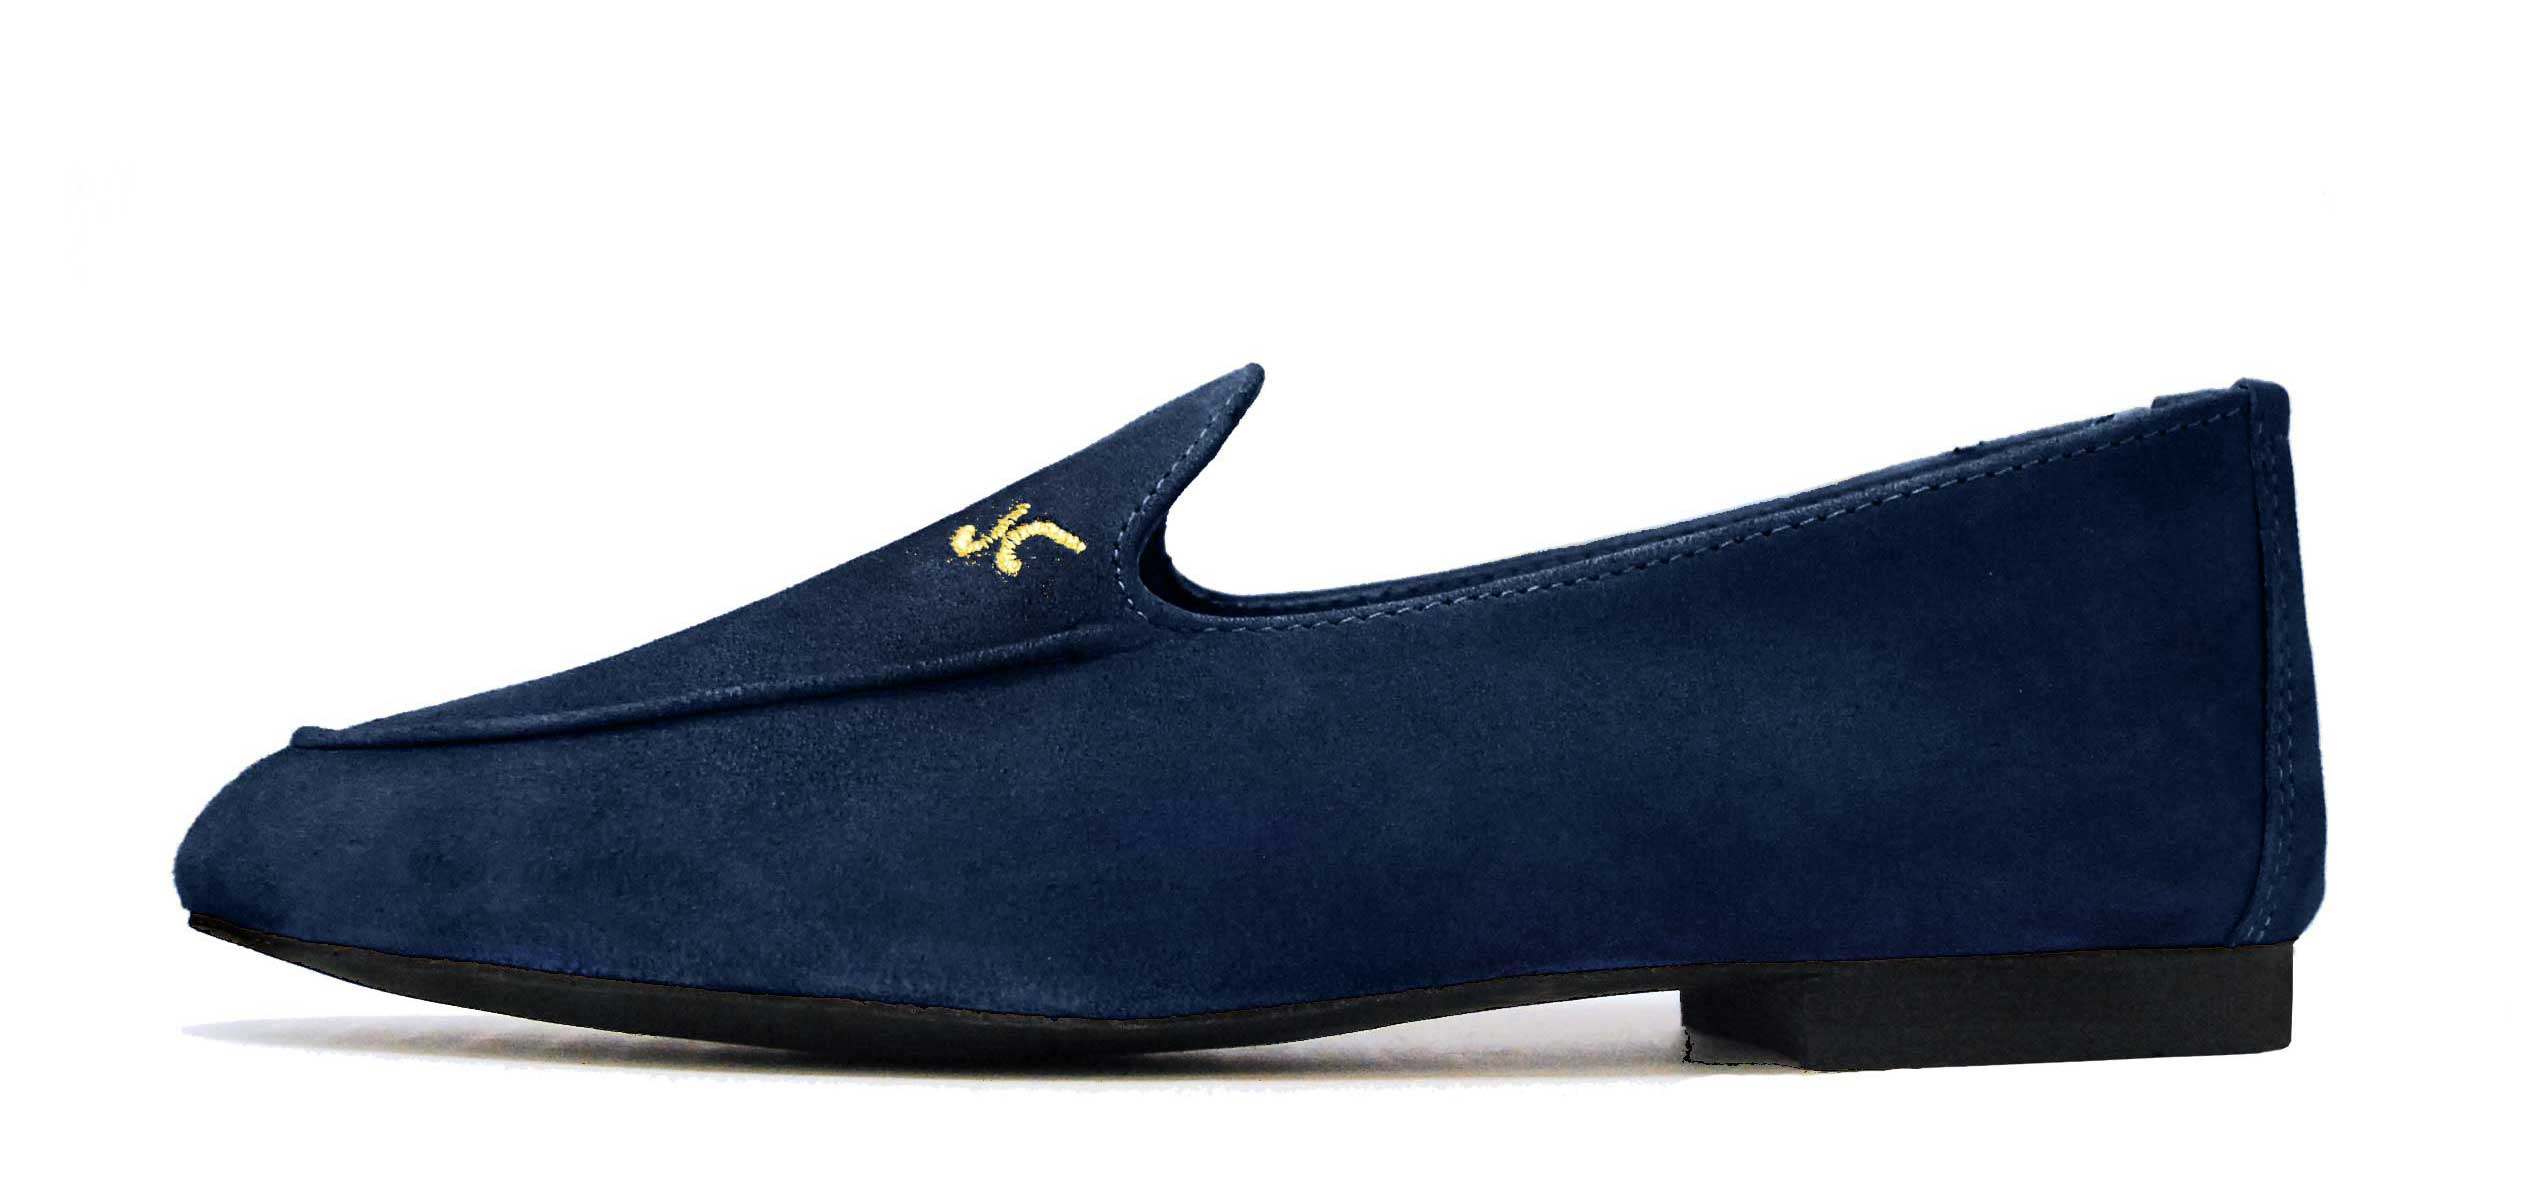 Foto 1 de Zapatos Julio Iglesias Mocasin Bluenight Ante